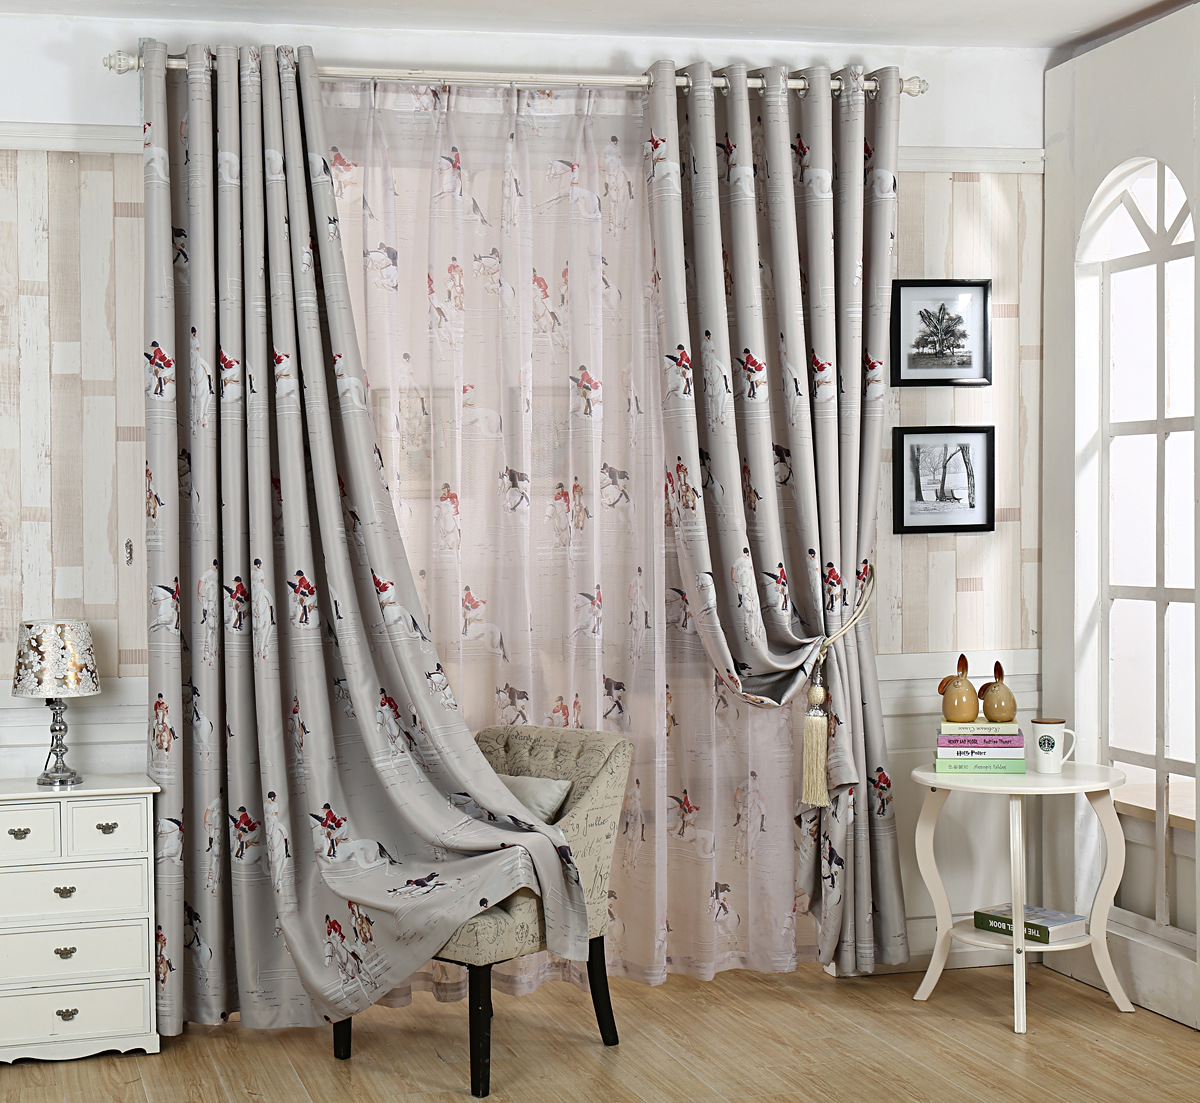 Curtain Fabric Wholesale Us 13 05 Factory Direct Sun Heat Can Be Printed Curtain Fabric Wholesale Zero Cut In Shade Sails Nets From Home Garden On Aliexpress